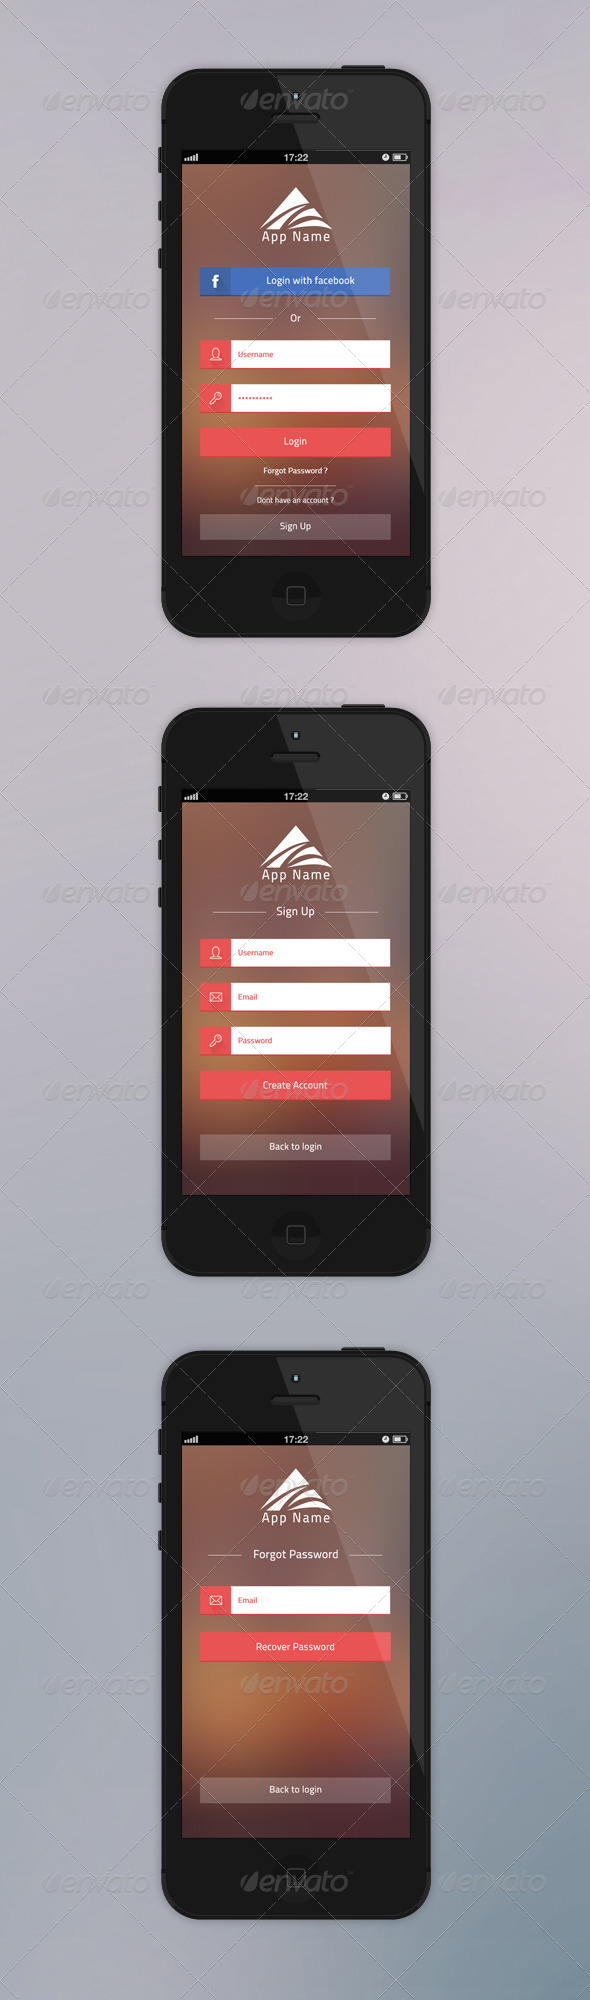 GraphicRiver Flati App Login 5968035